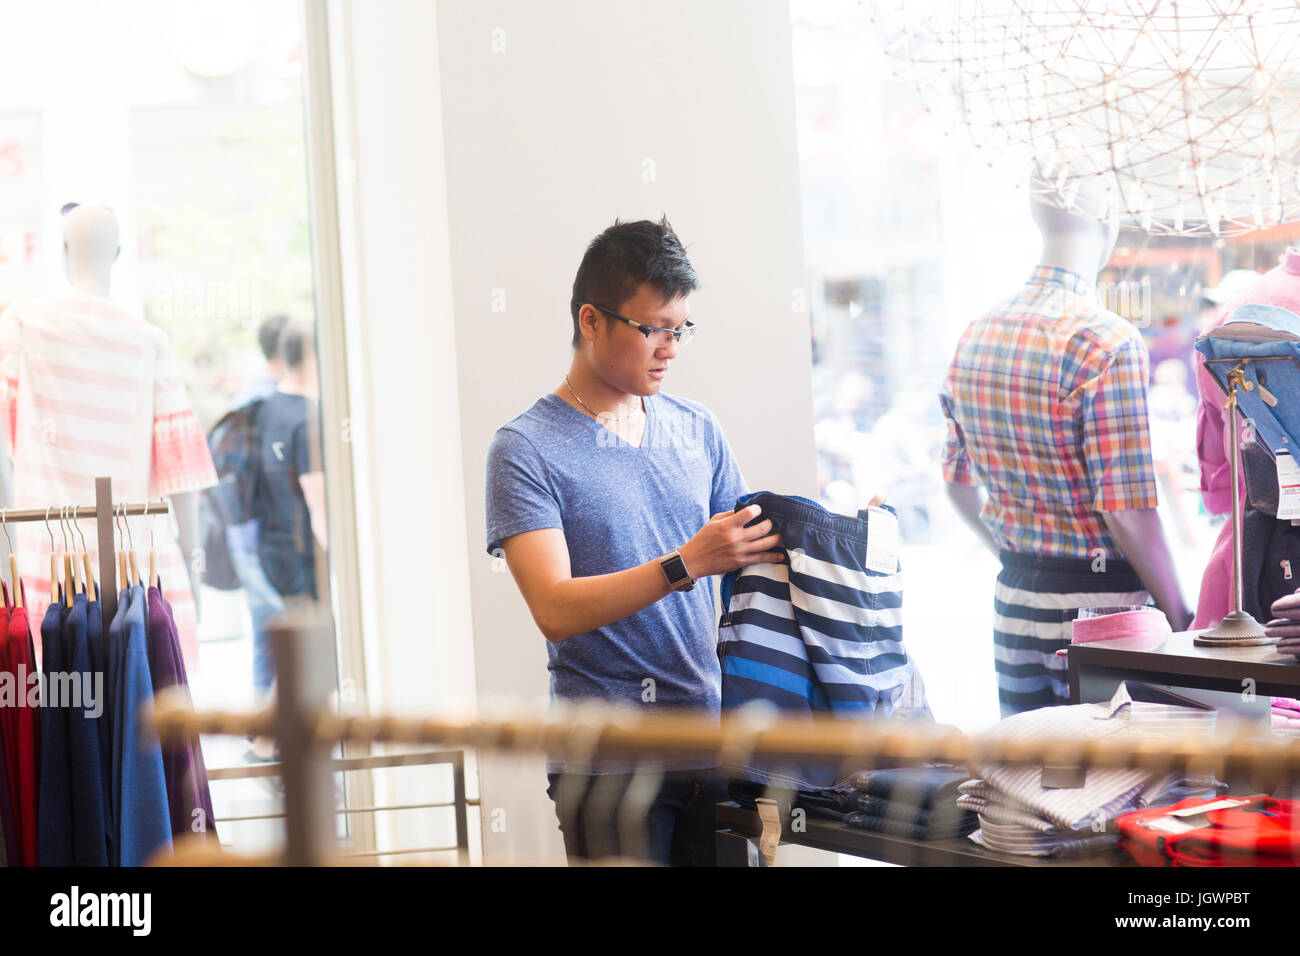 Young man clothes shopping - Stock Image